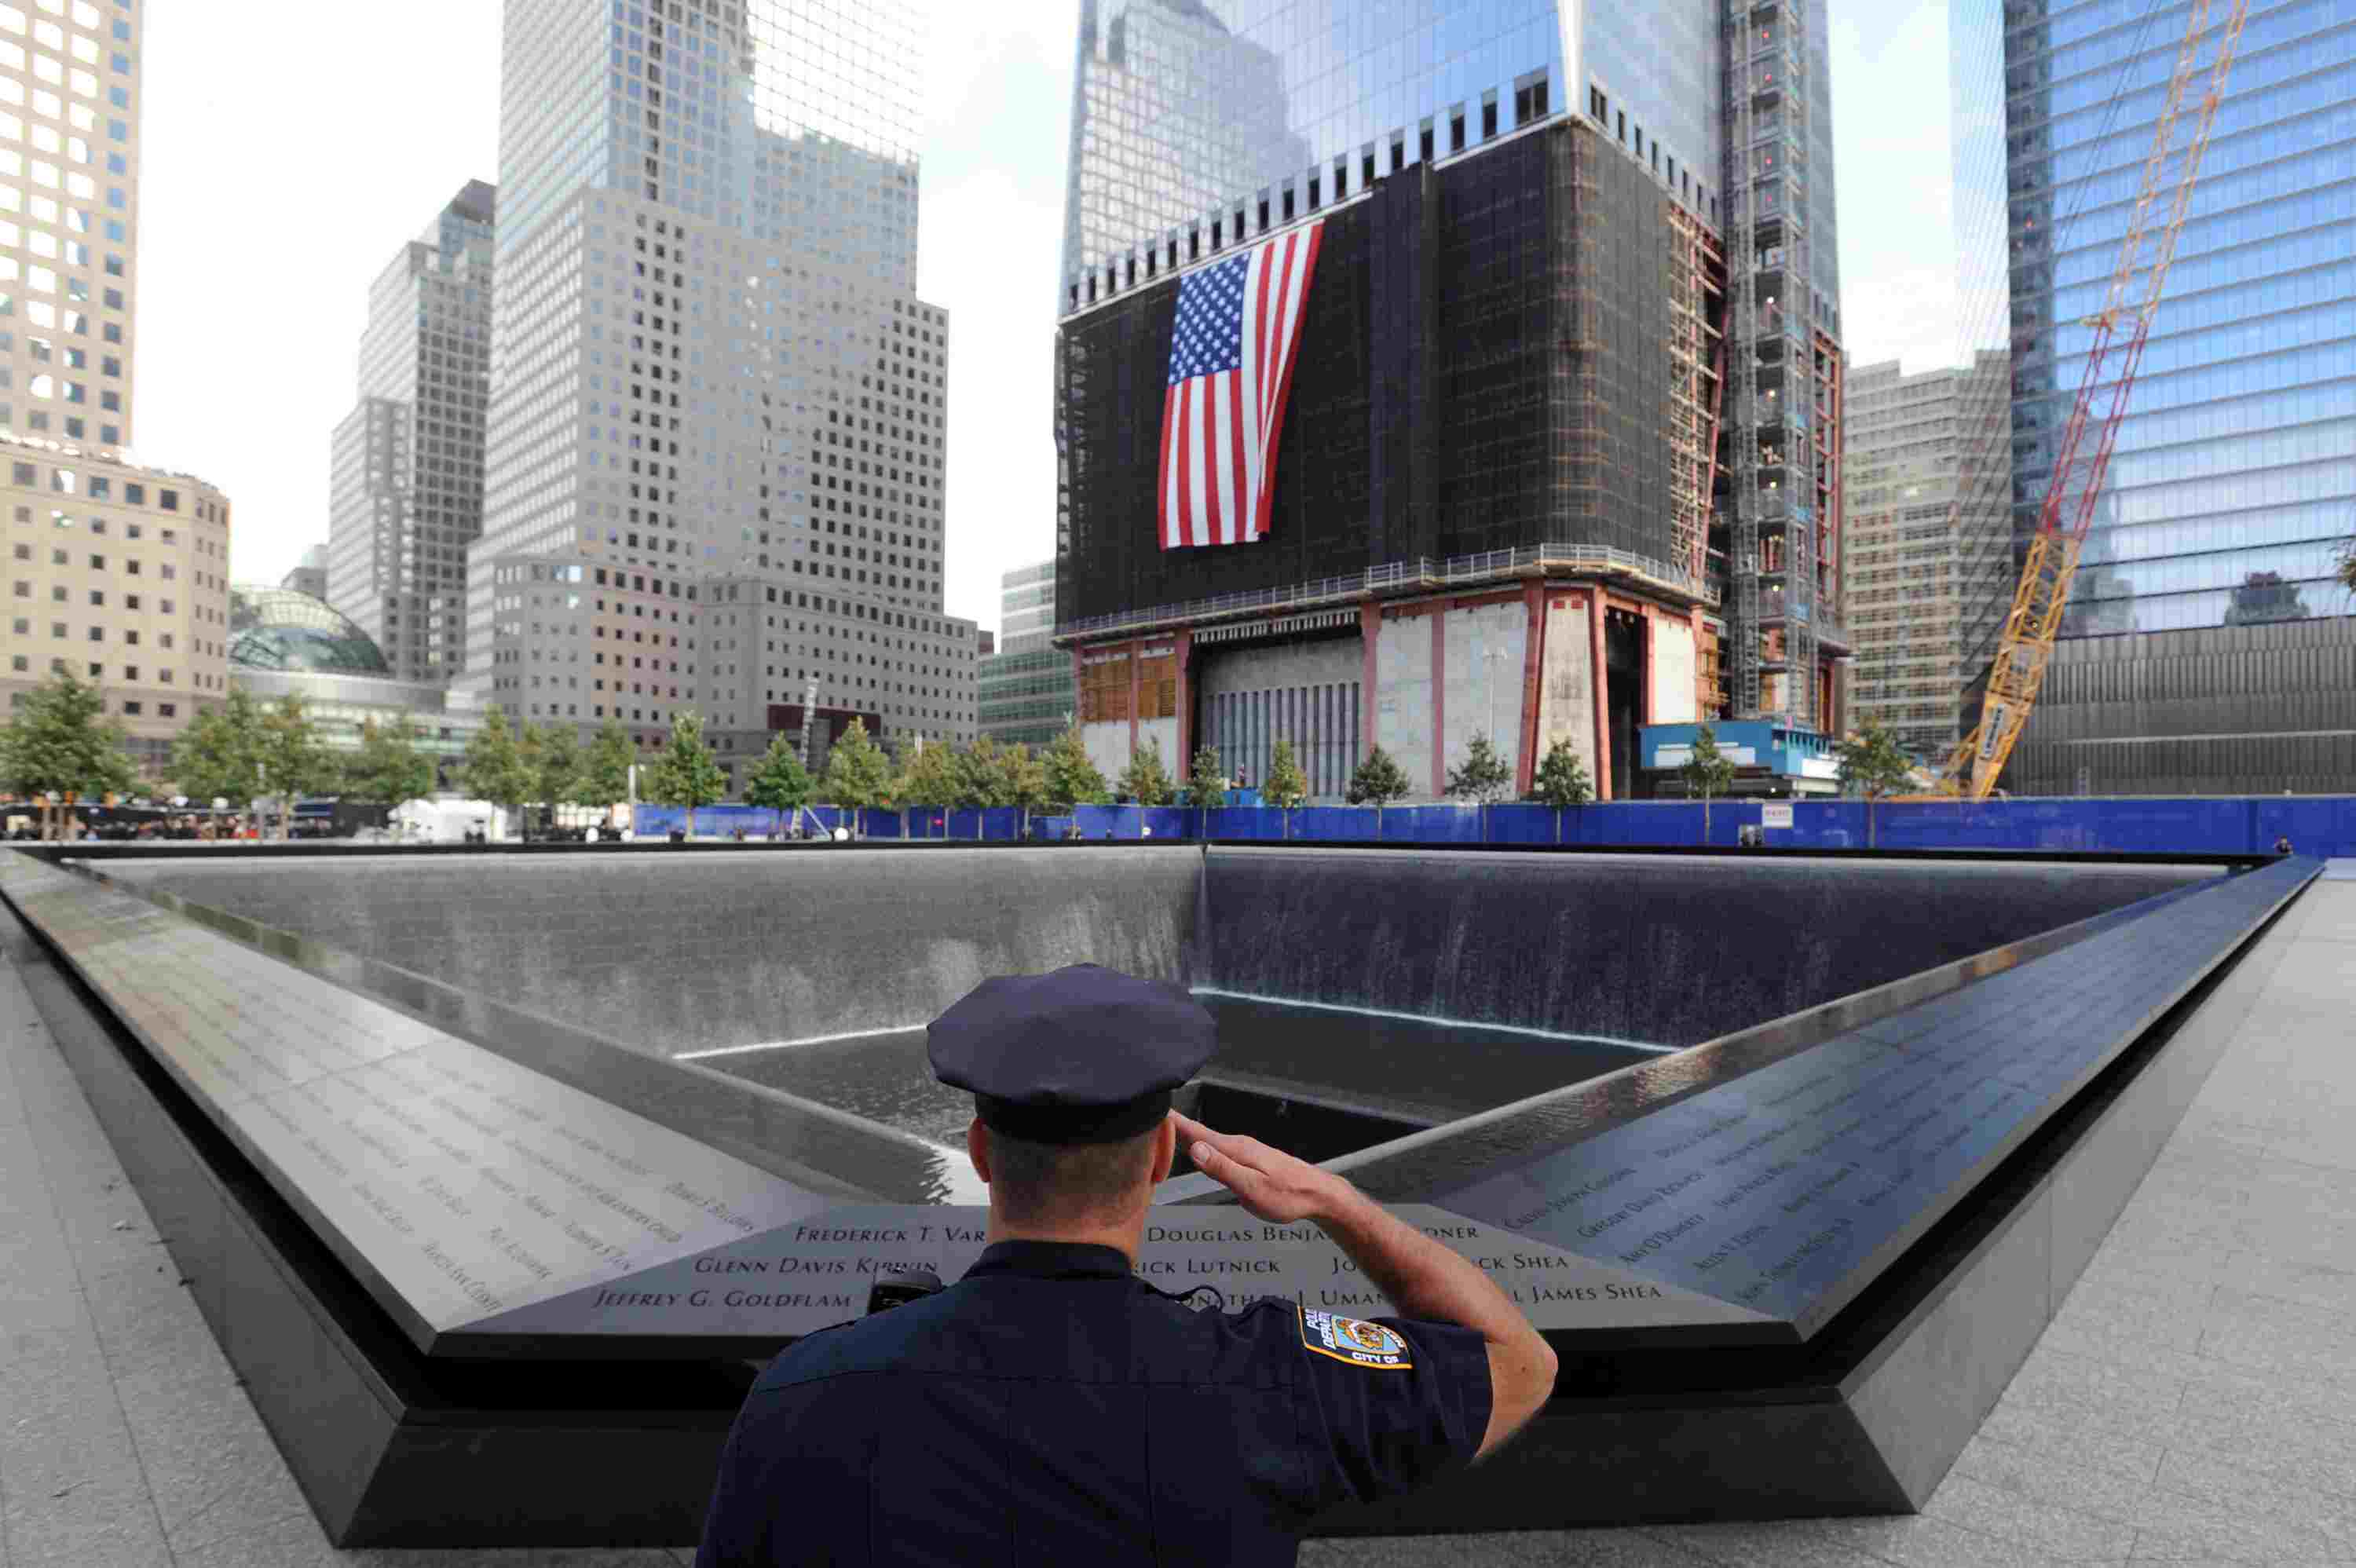 New York City Police Danny Shea Agent, un vétérinaire militaire, salue à la piscine nord du 9/11 Memorial lors de la cérémonie dixième anniversaire des attentats du 11 Septembre, attentats terroristes de 2001 sur le site du World Trade Center, le 11 Septembre, 2011 à New York ville, construction 1WTC en arrière-plan